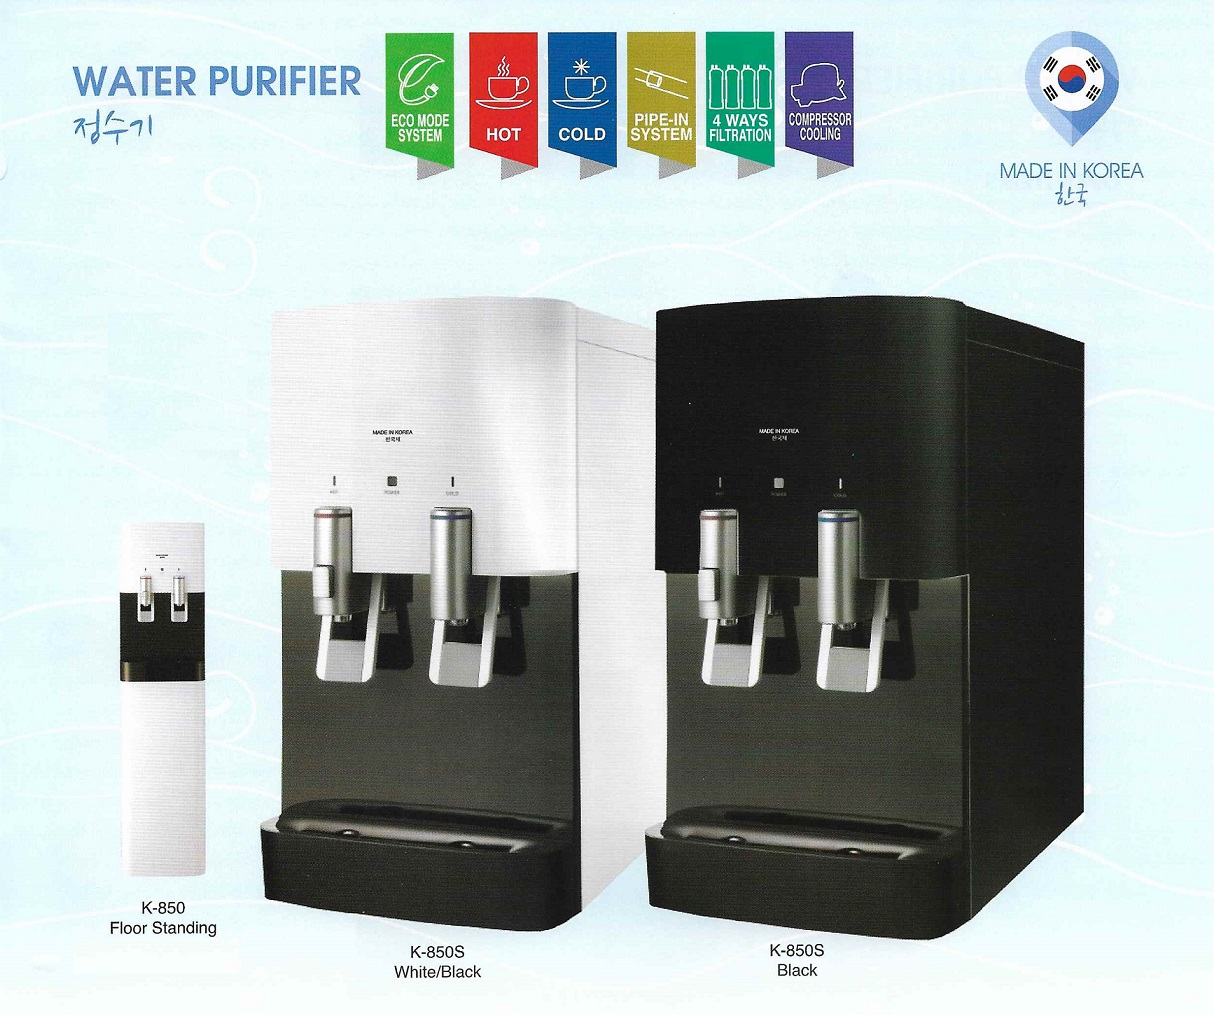 FW1002 KOREA FA-850S Energy Saving Hot & Cold Counter Top Water Filter Dispenser KEDAH